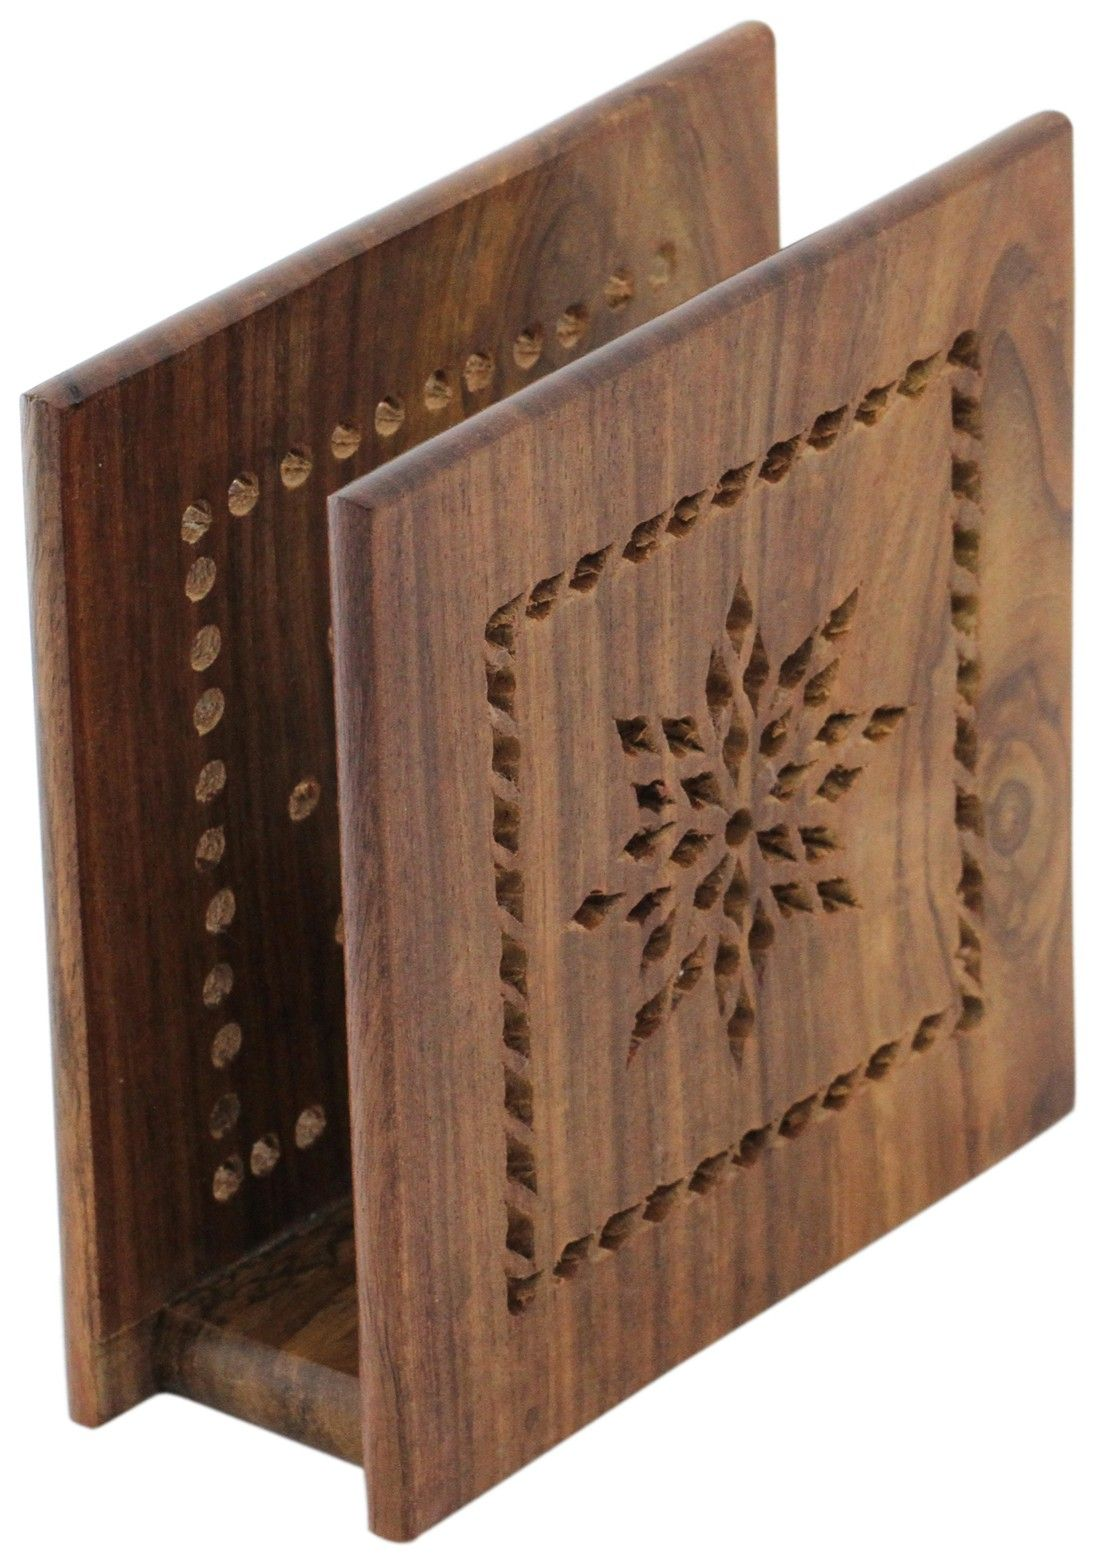 Timeless Creations Handmade 4 7 Wooden Napkin Holder Stand Decorated With Jaali Work Dining Kitchen Wood Napkin Holder Napkin Holder Diy Napkin Holder